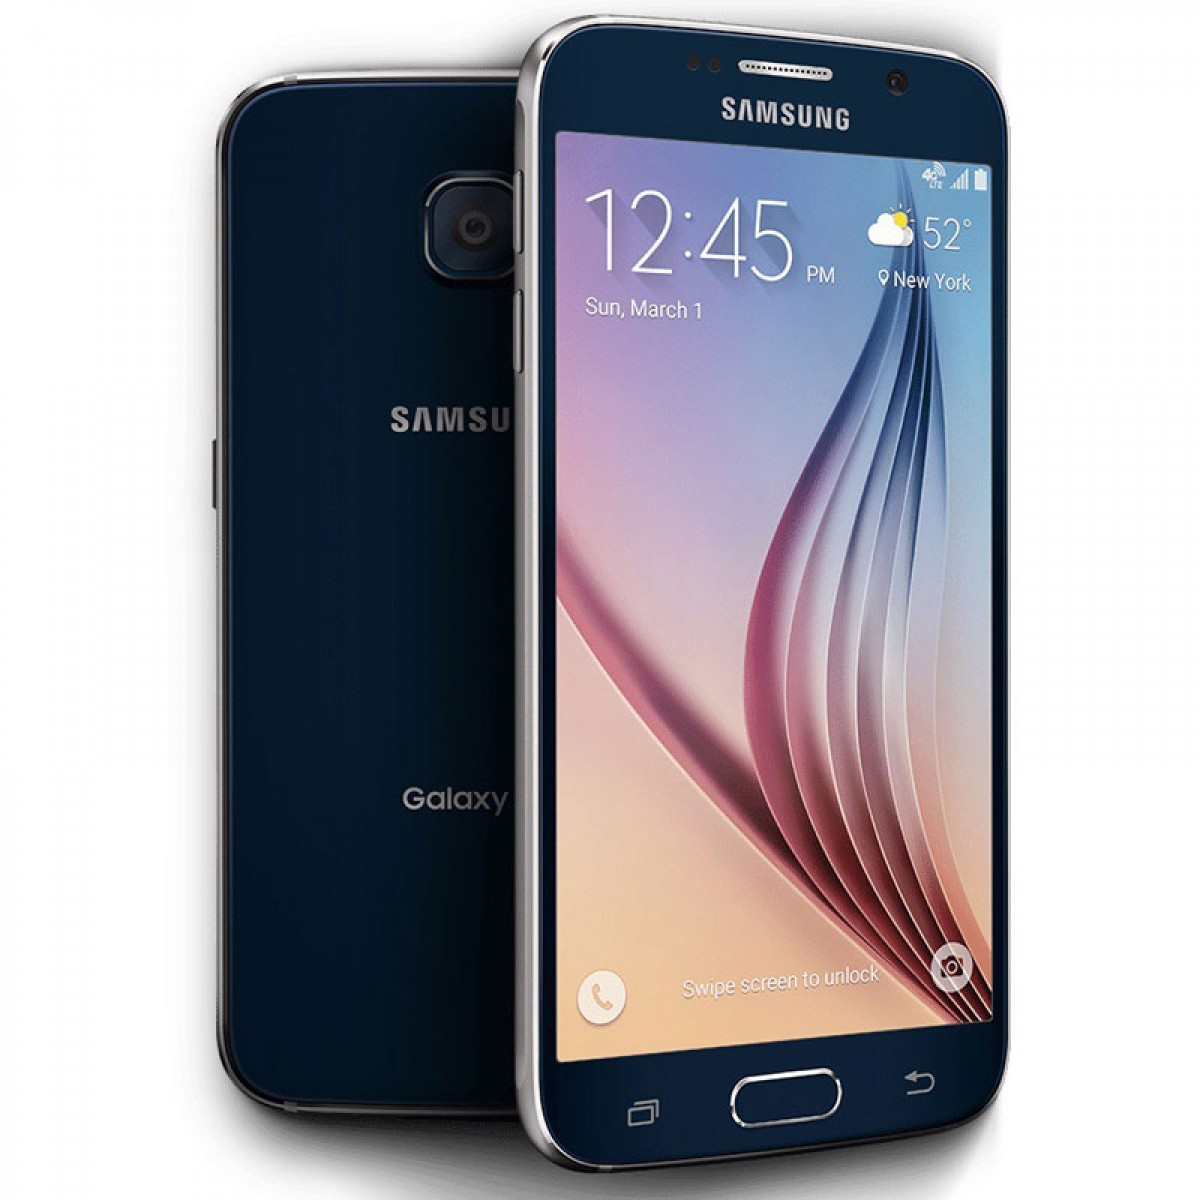 how to install android 6 0 1 marshmallow noble s7 edge rom 2 0 on galaxy s6 duos sm g920fd. Black Bedroom Furniture Sets. Home Design Ideas